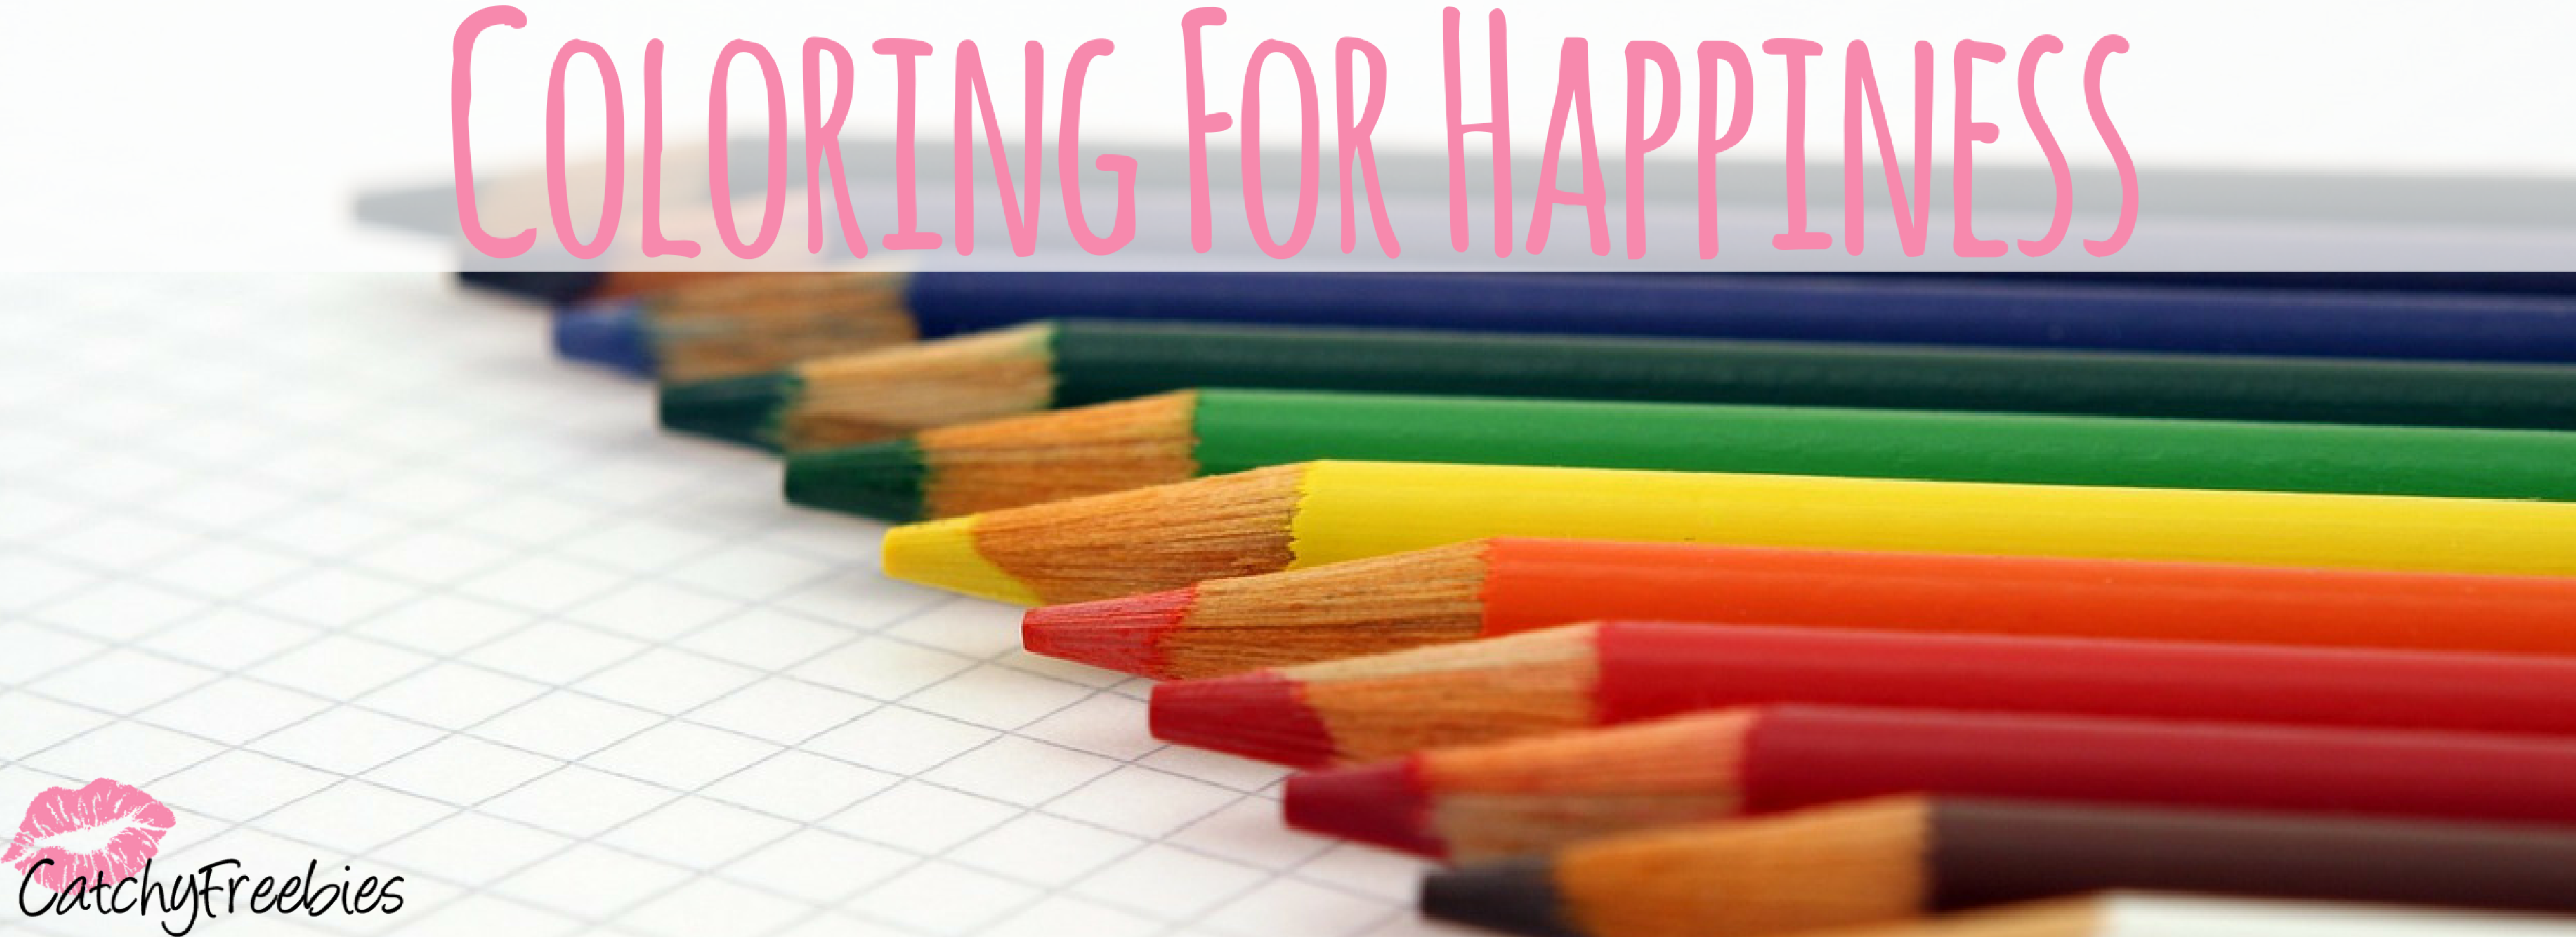 Coloring For Happiness